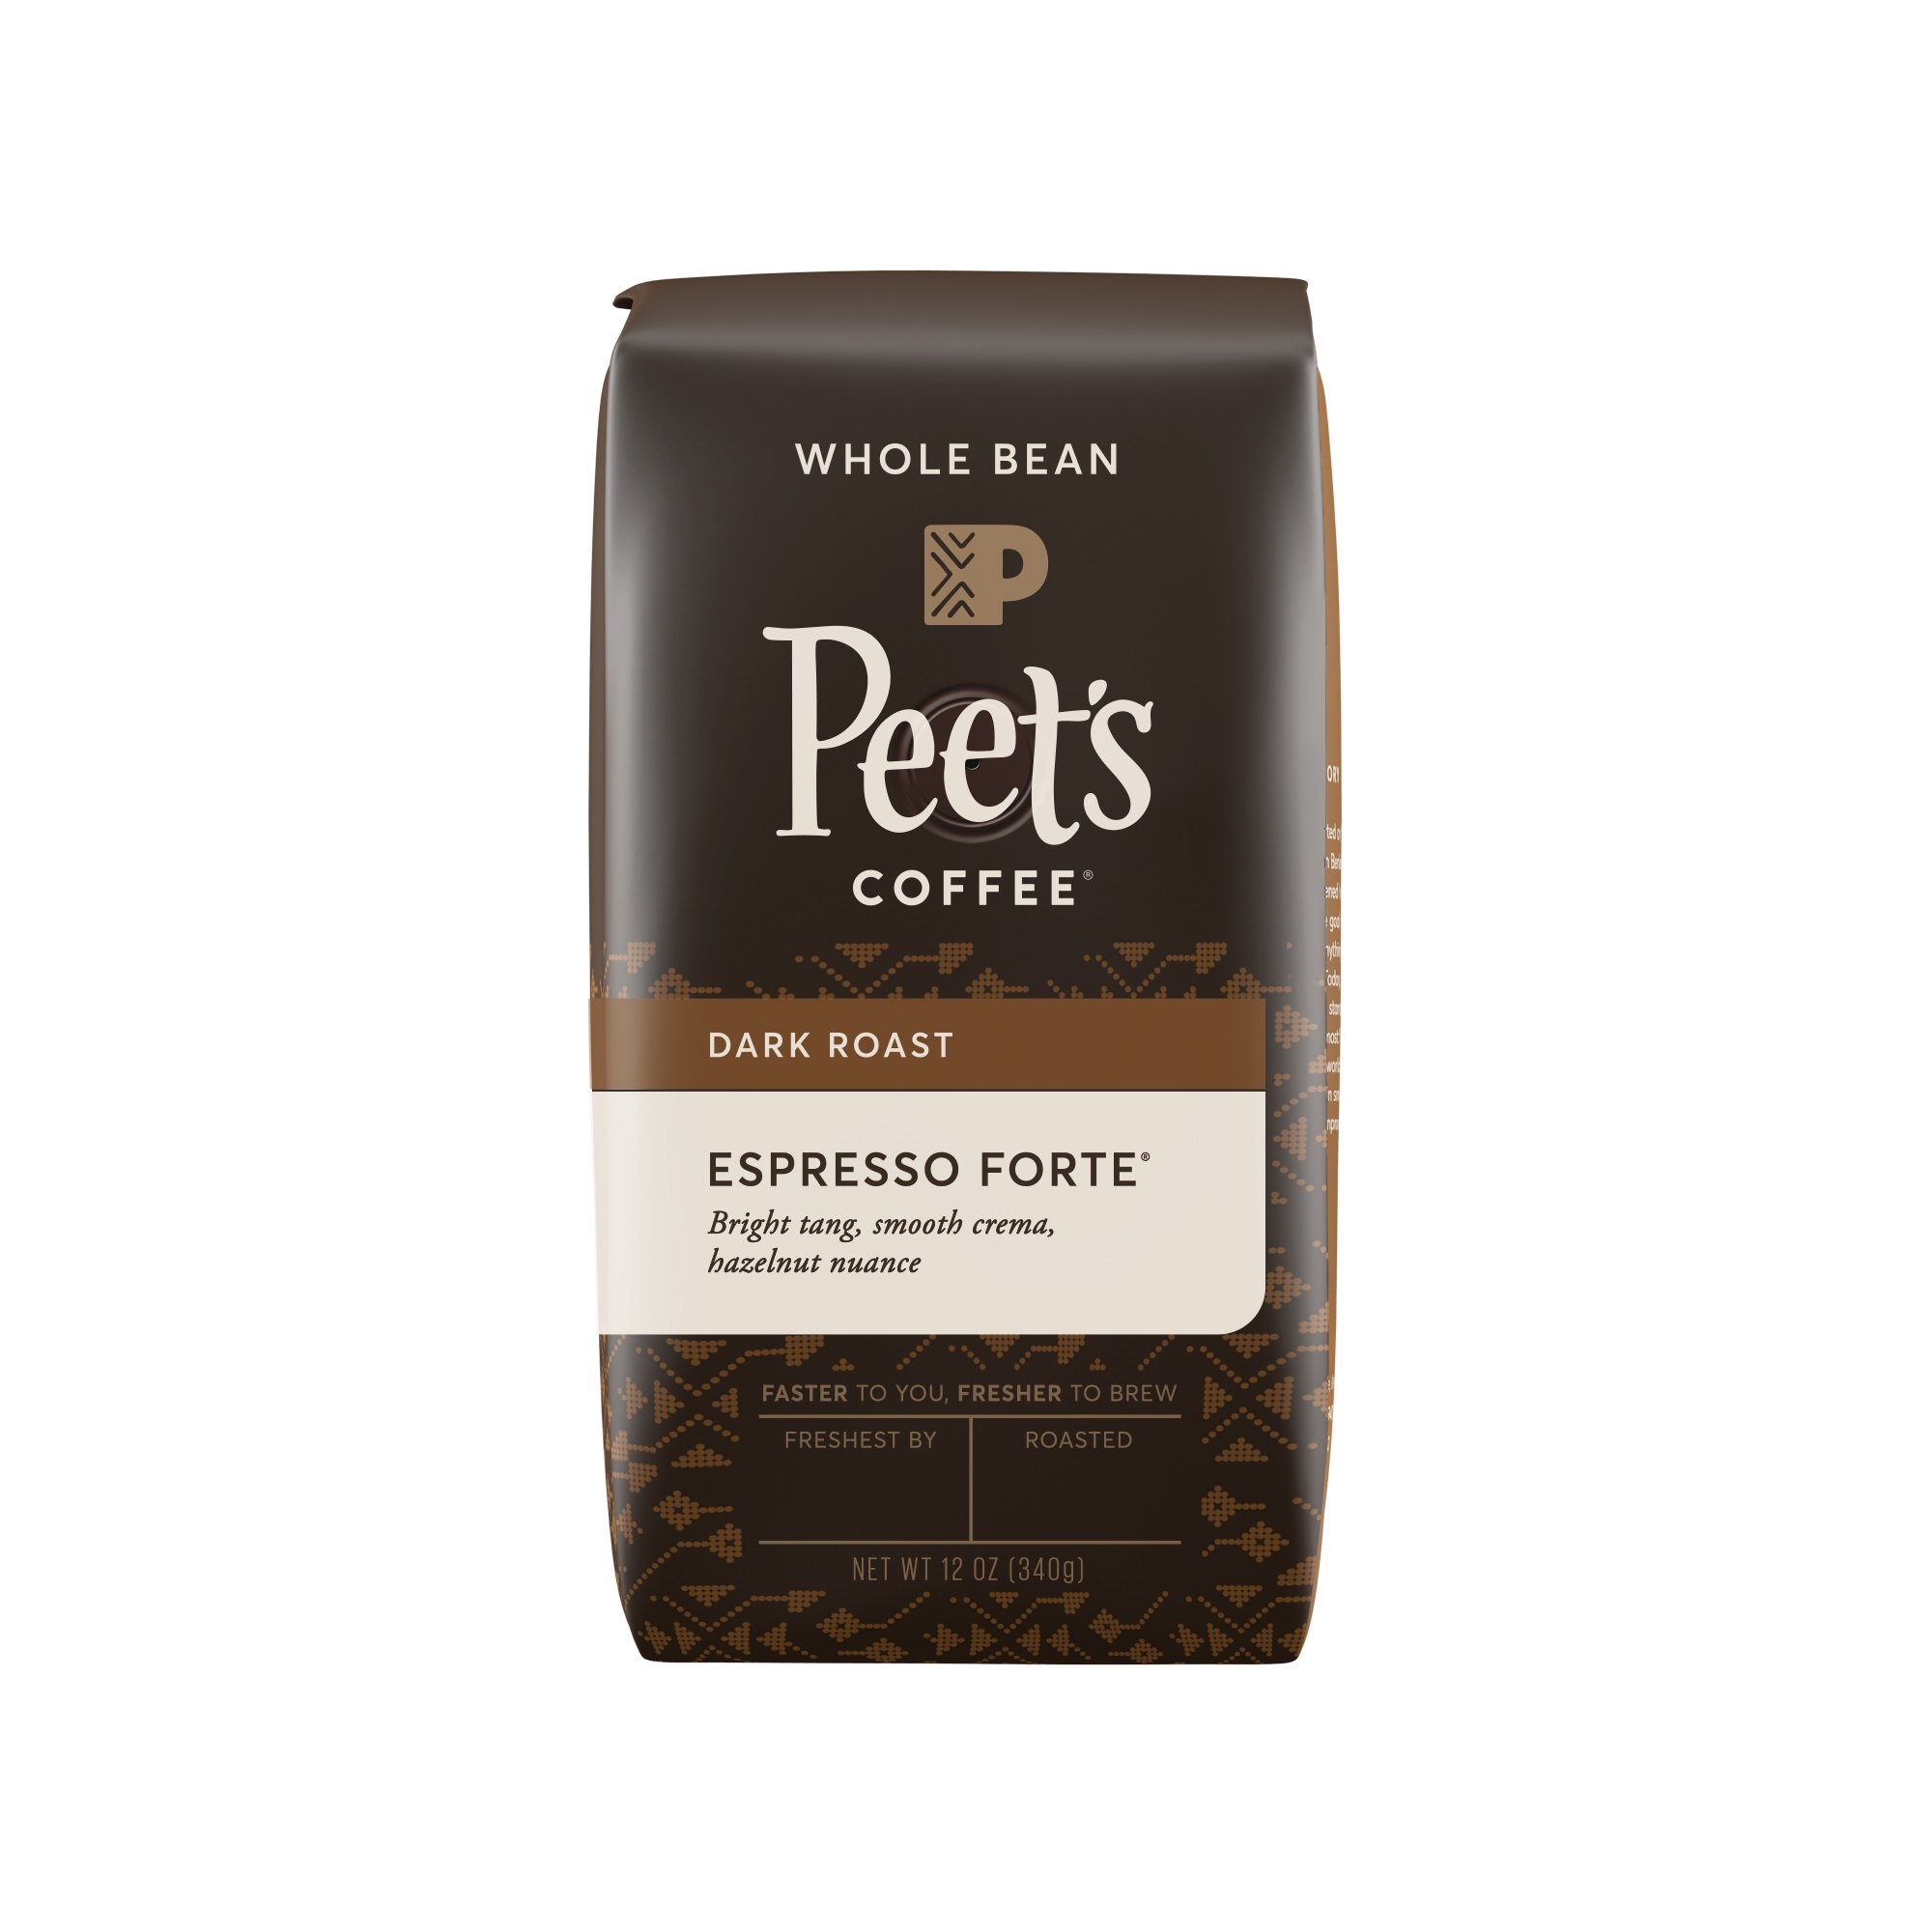 Peet's Coffee, Espresso Forte Dark Roast, Whole Coffee Bean, 12 oz. Bag, Robust, Rounded Body, a Balanced Stout and Bright Blend Specific for Espresso, with Rich Flavor and Crema